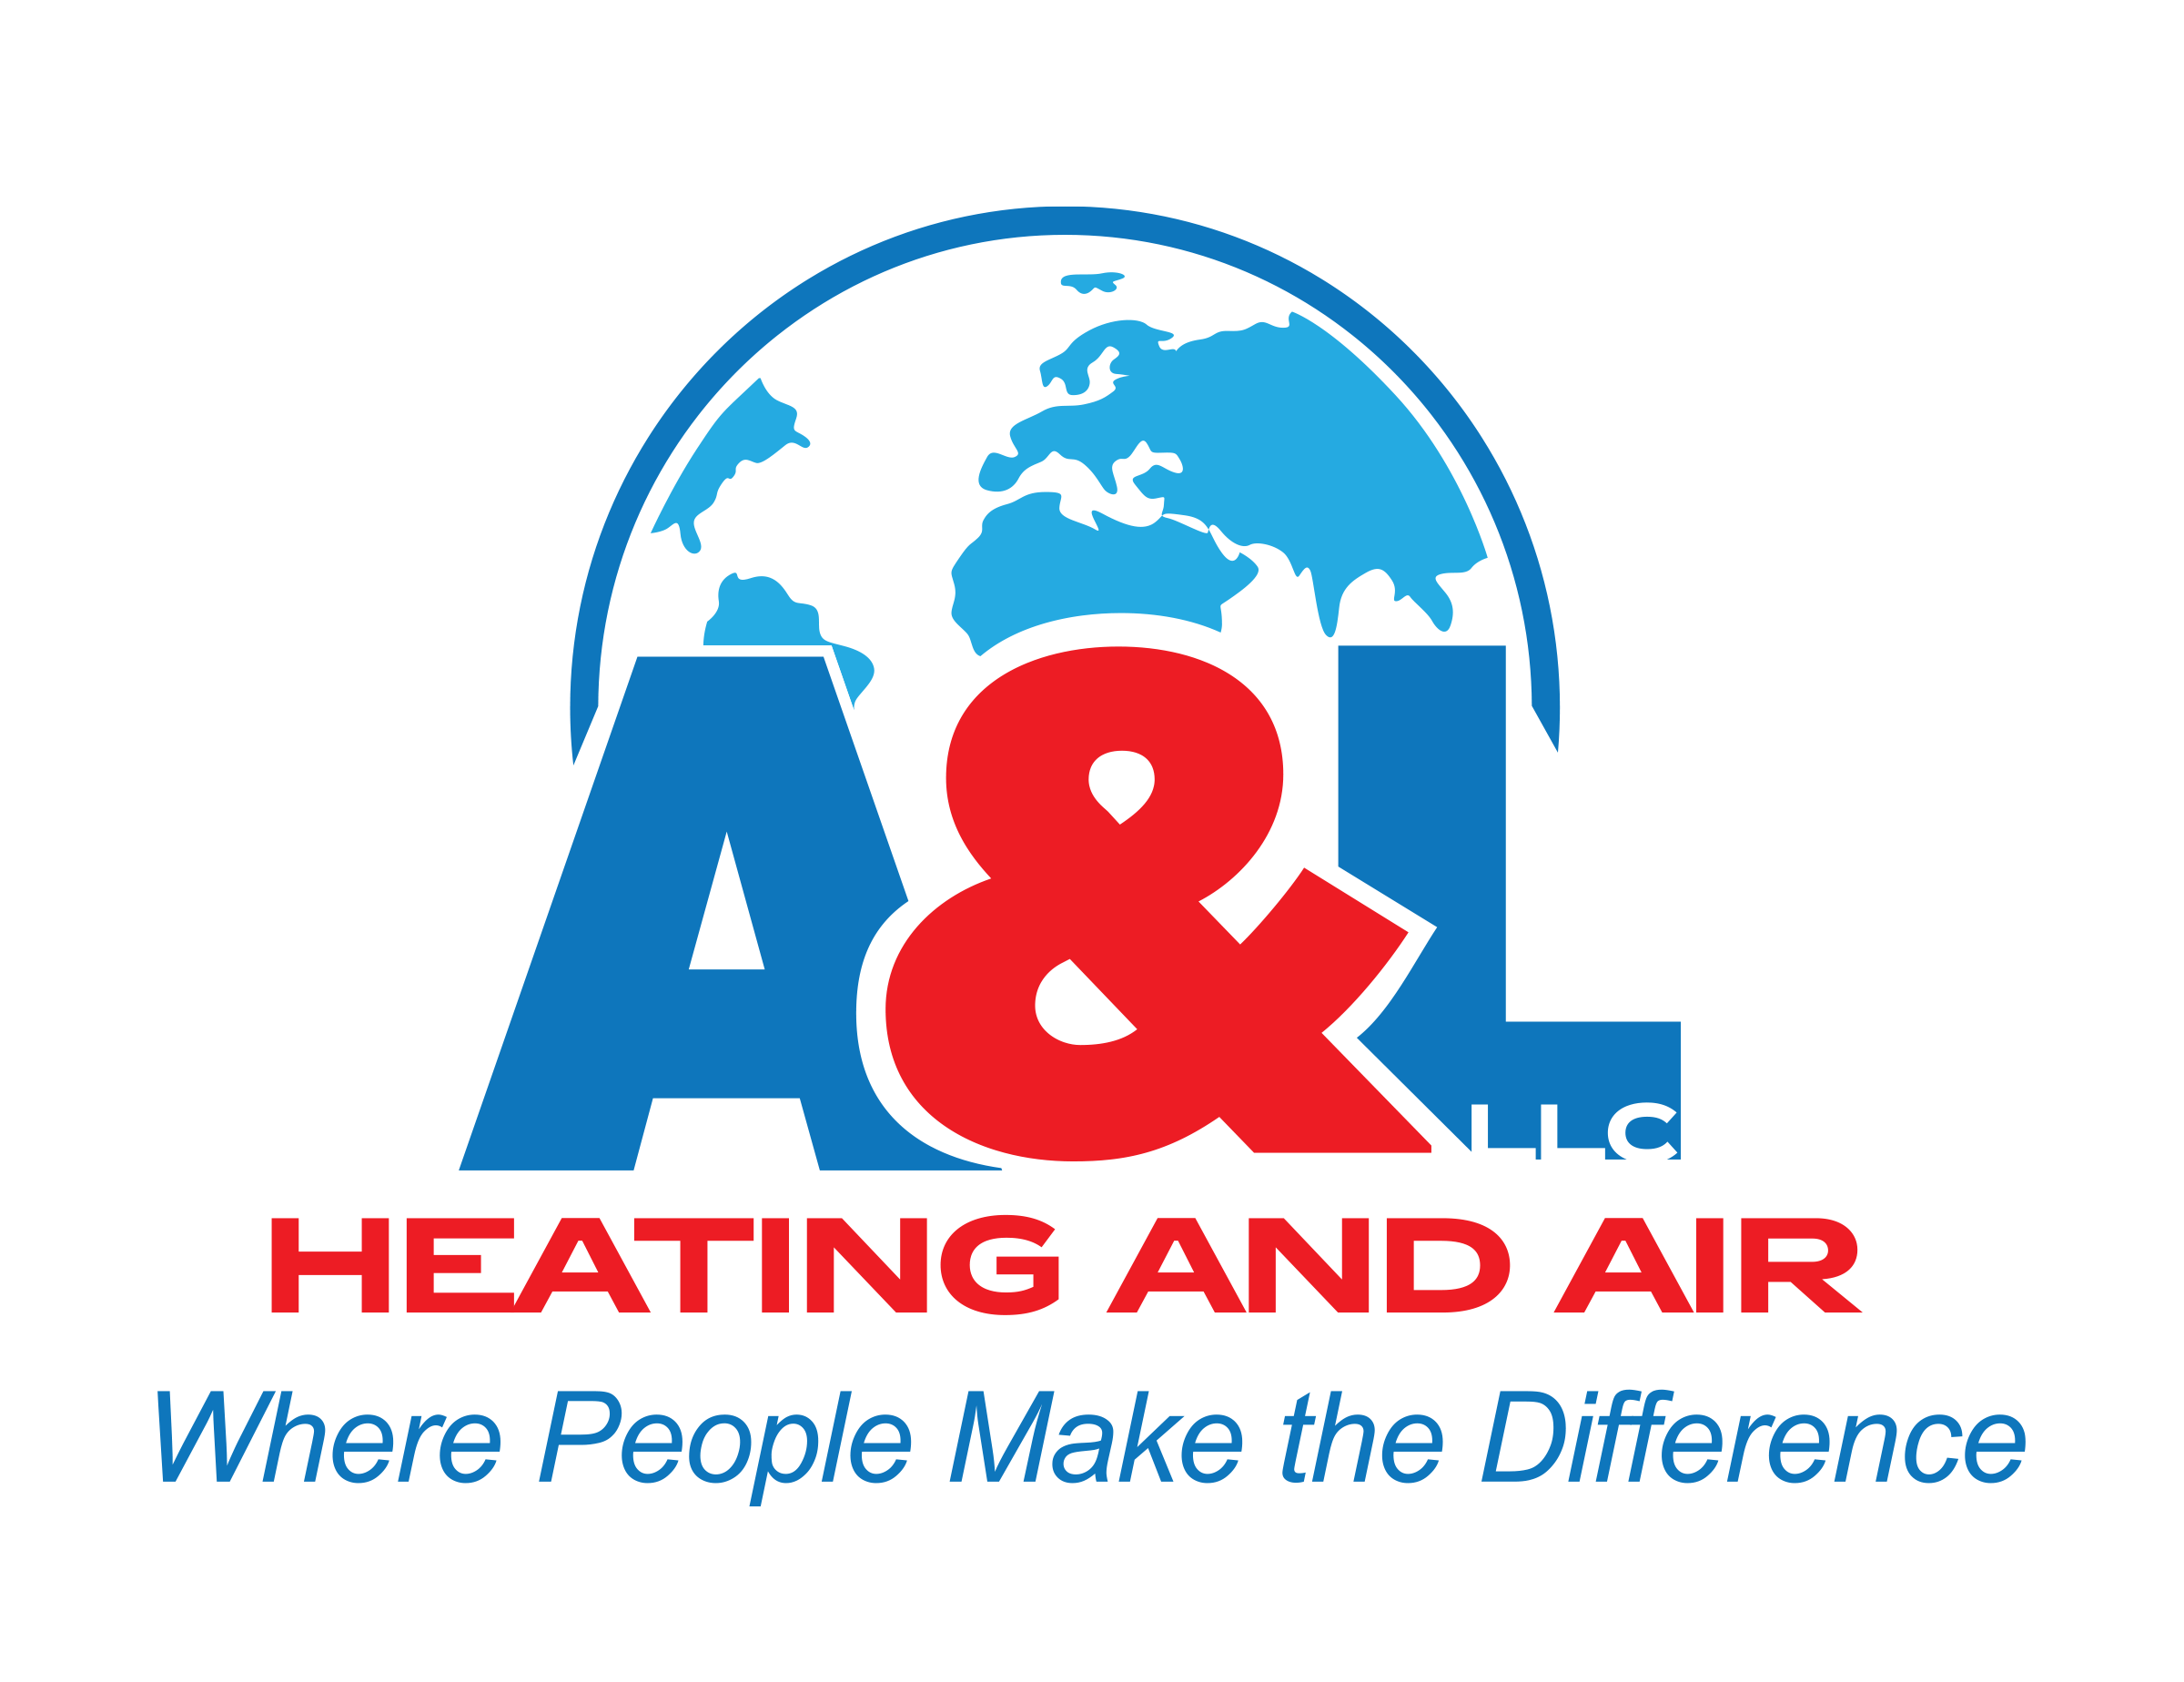 A & L Heating and Air, LLC logo